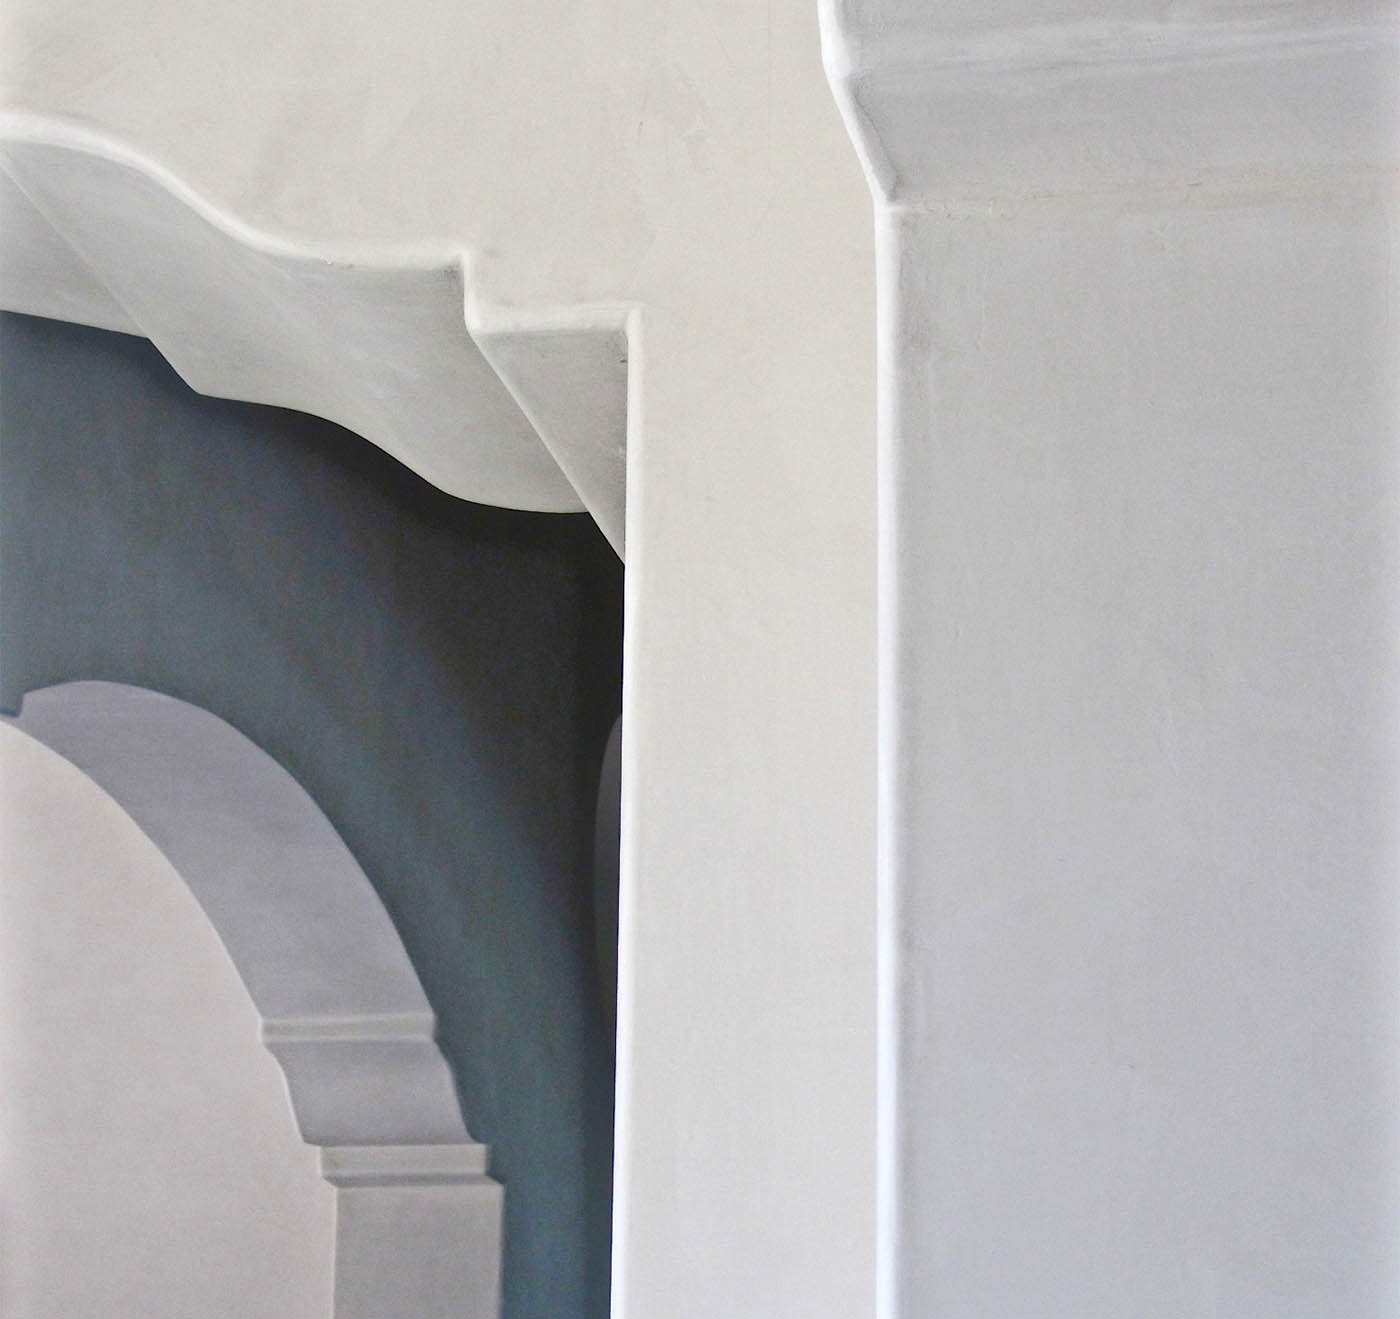 soft matte plaster finish